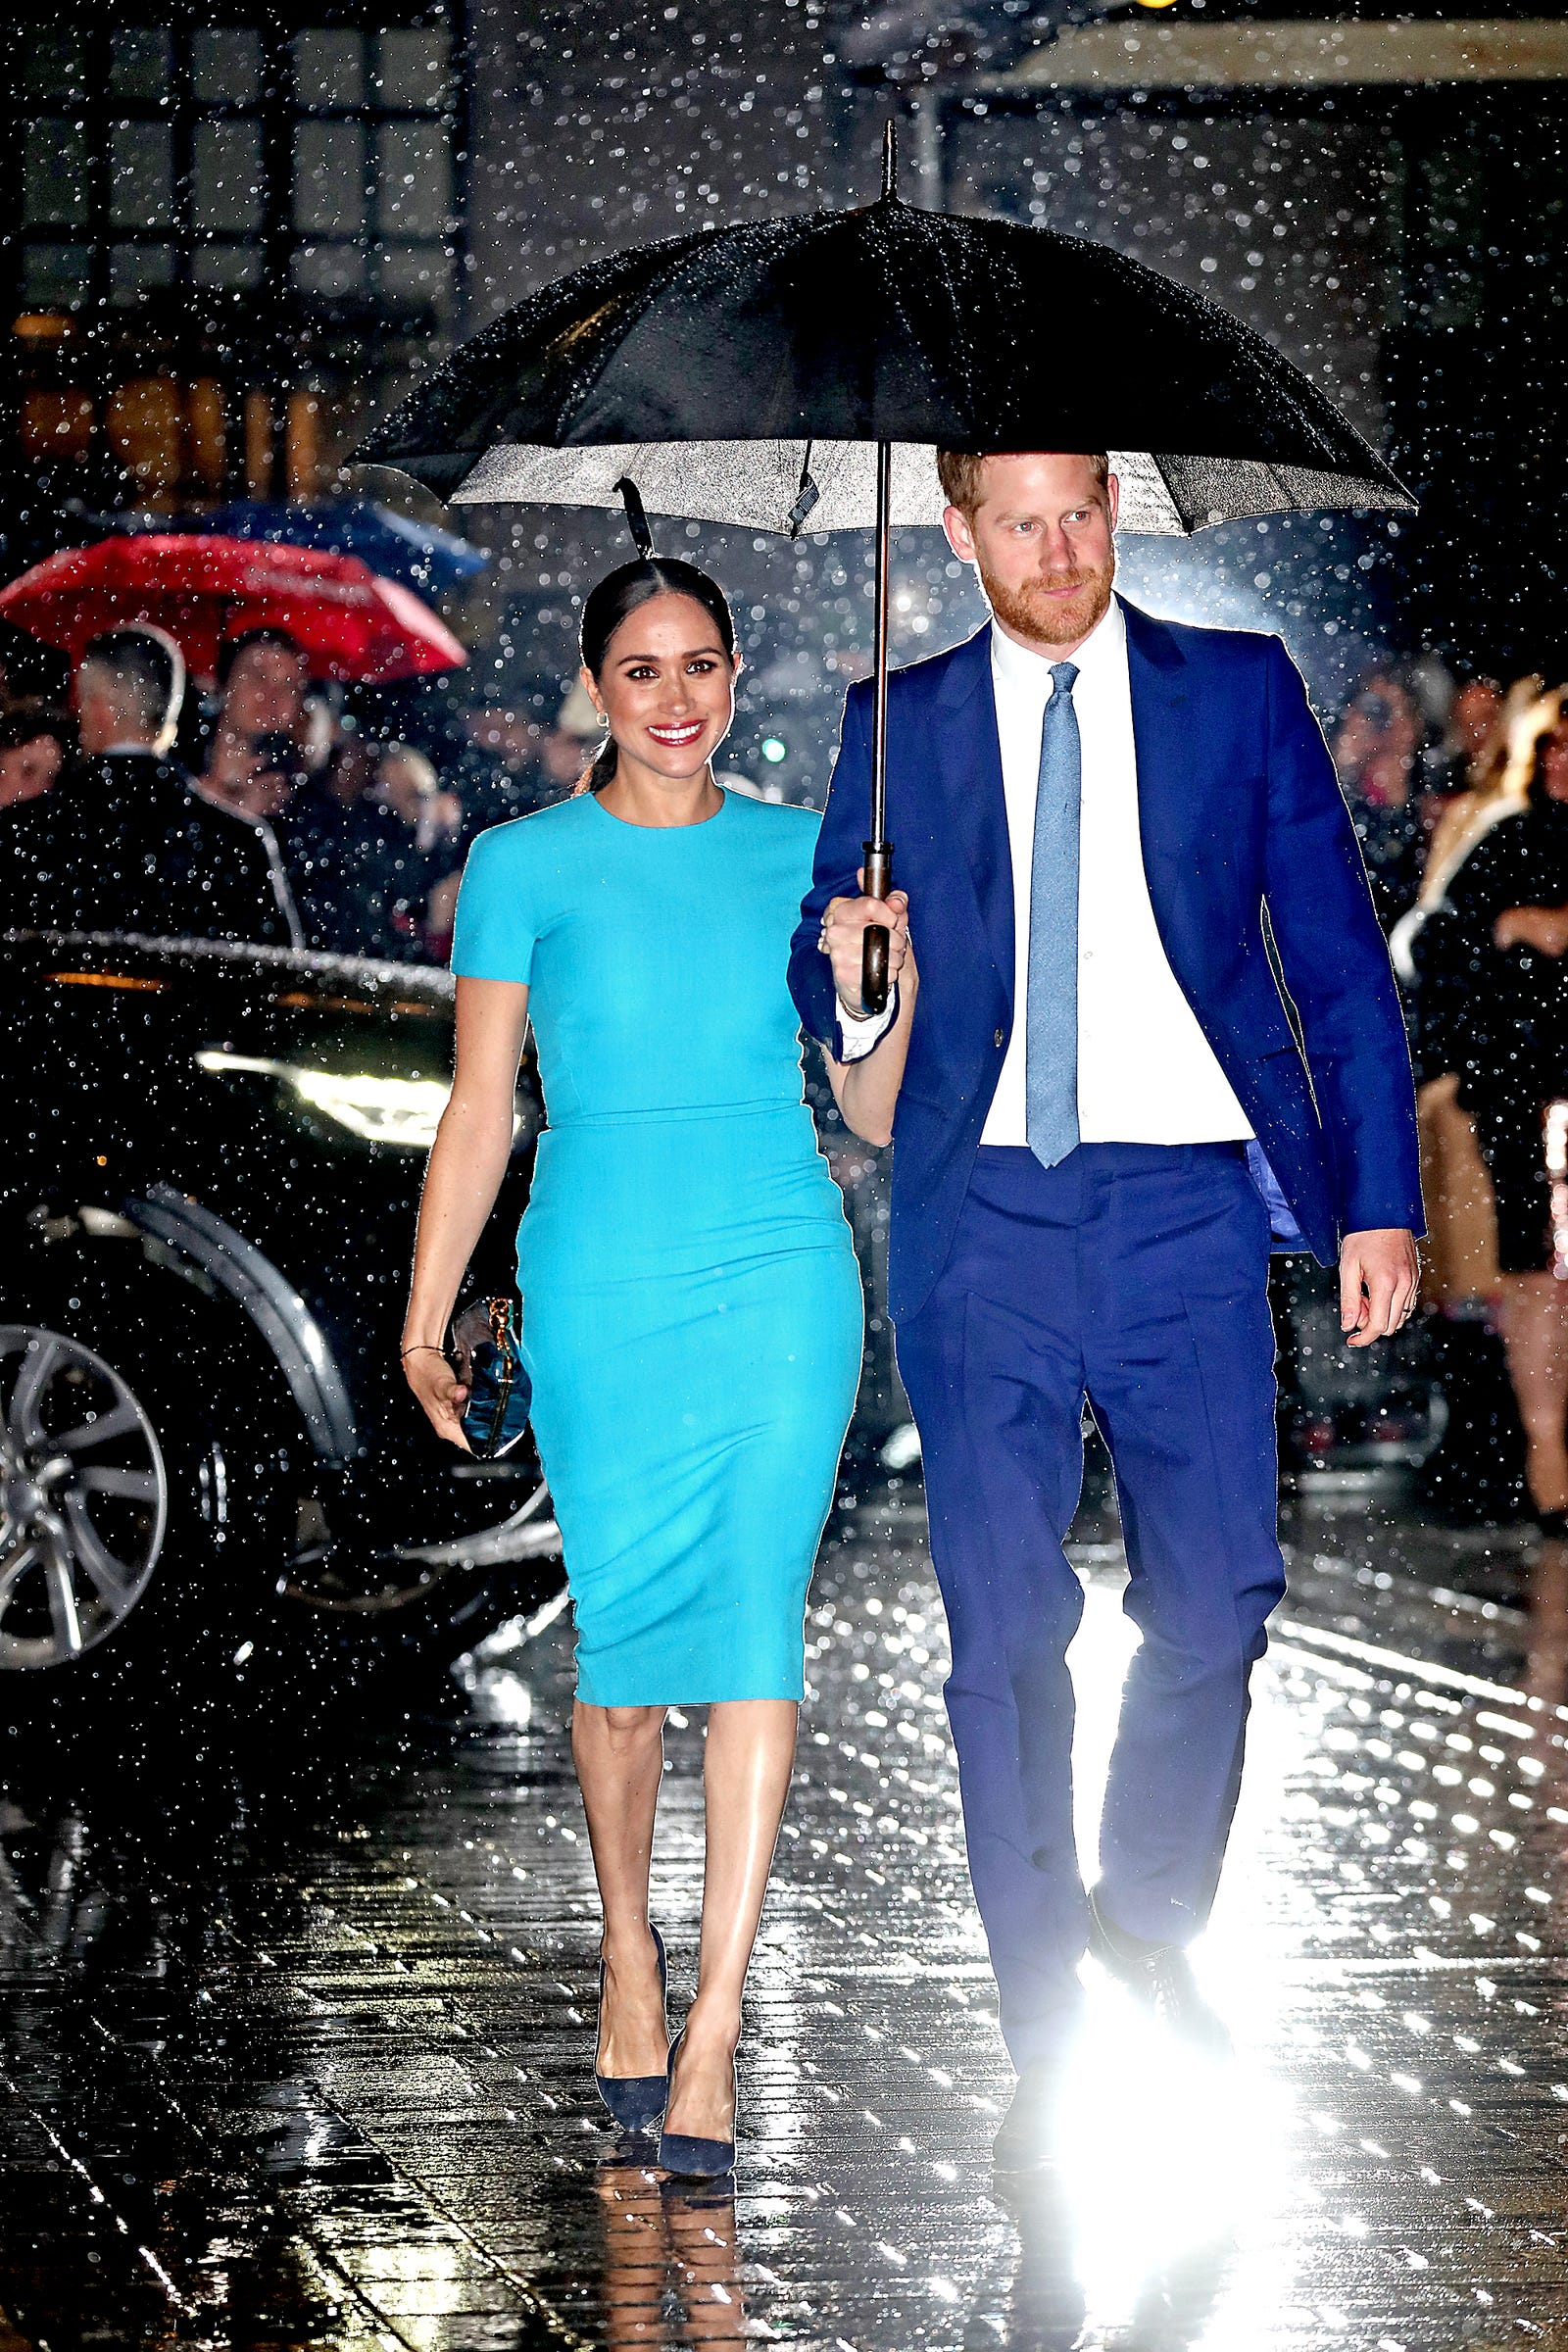 Prince Harry, Duke of Sussex and Meghan, Duchess of Sussex attend The Endeavour Fund Awards at Mansion House on March 05, 2020, in London, England.